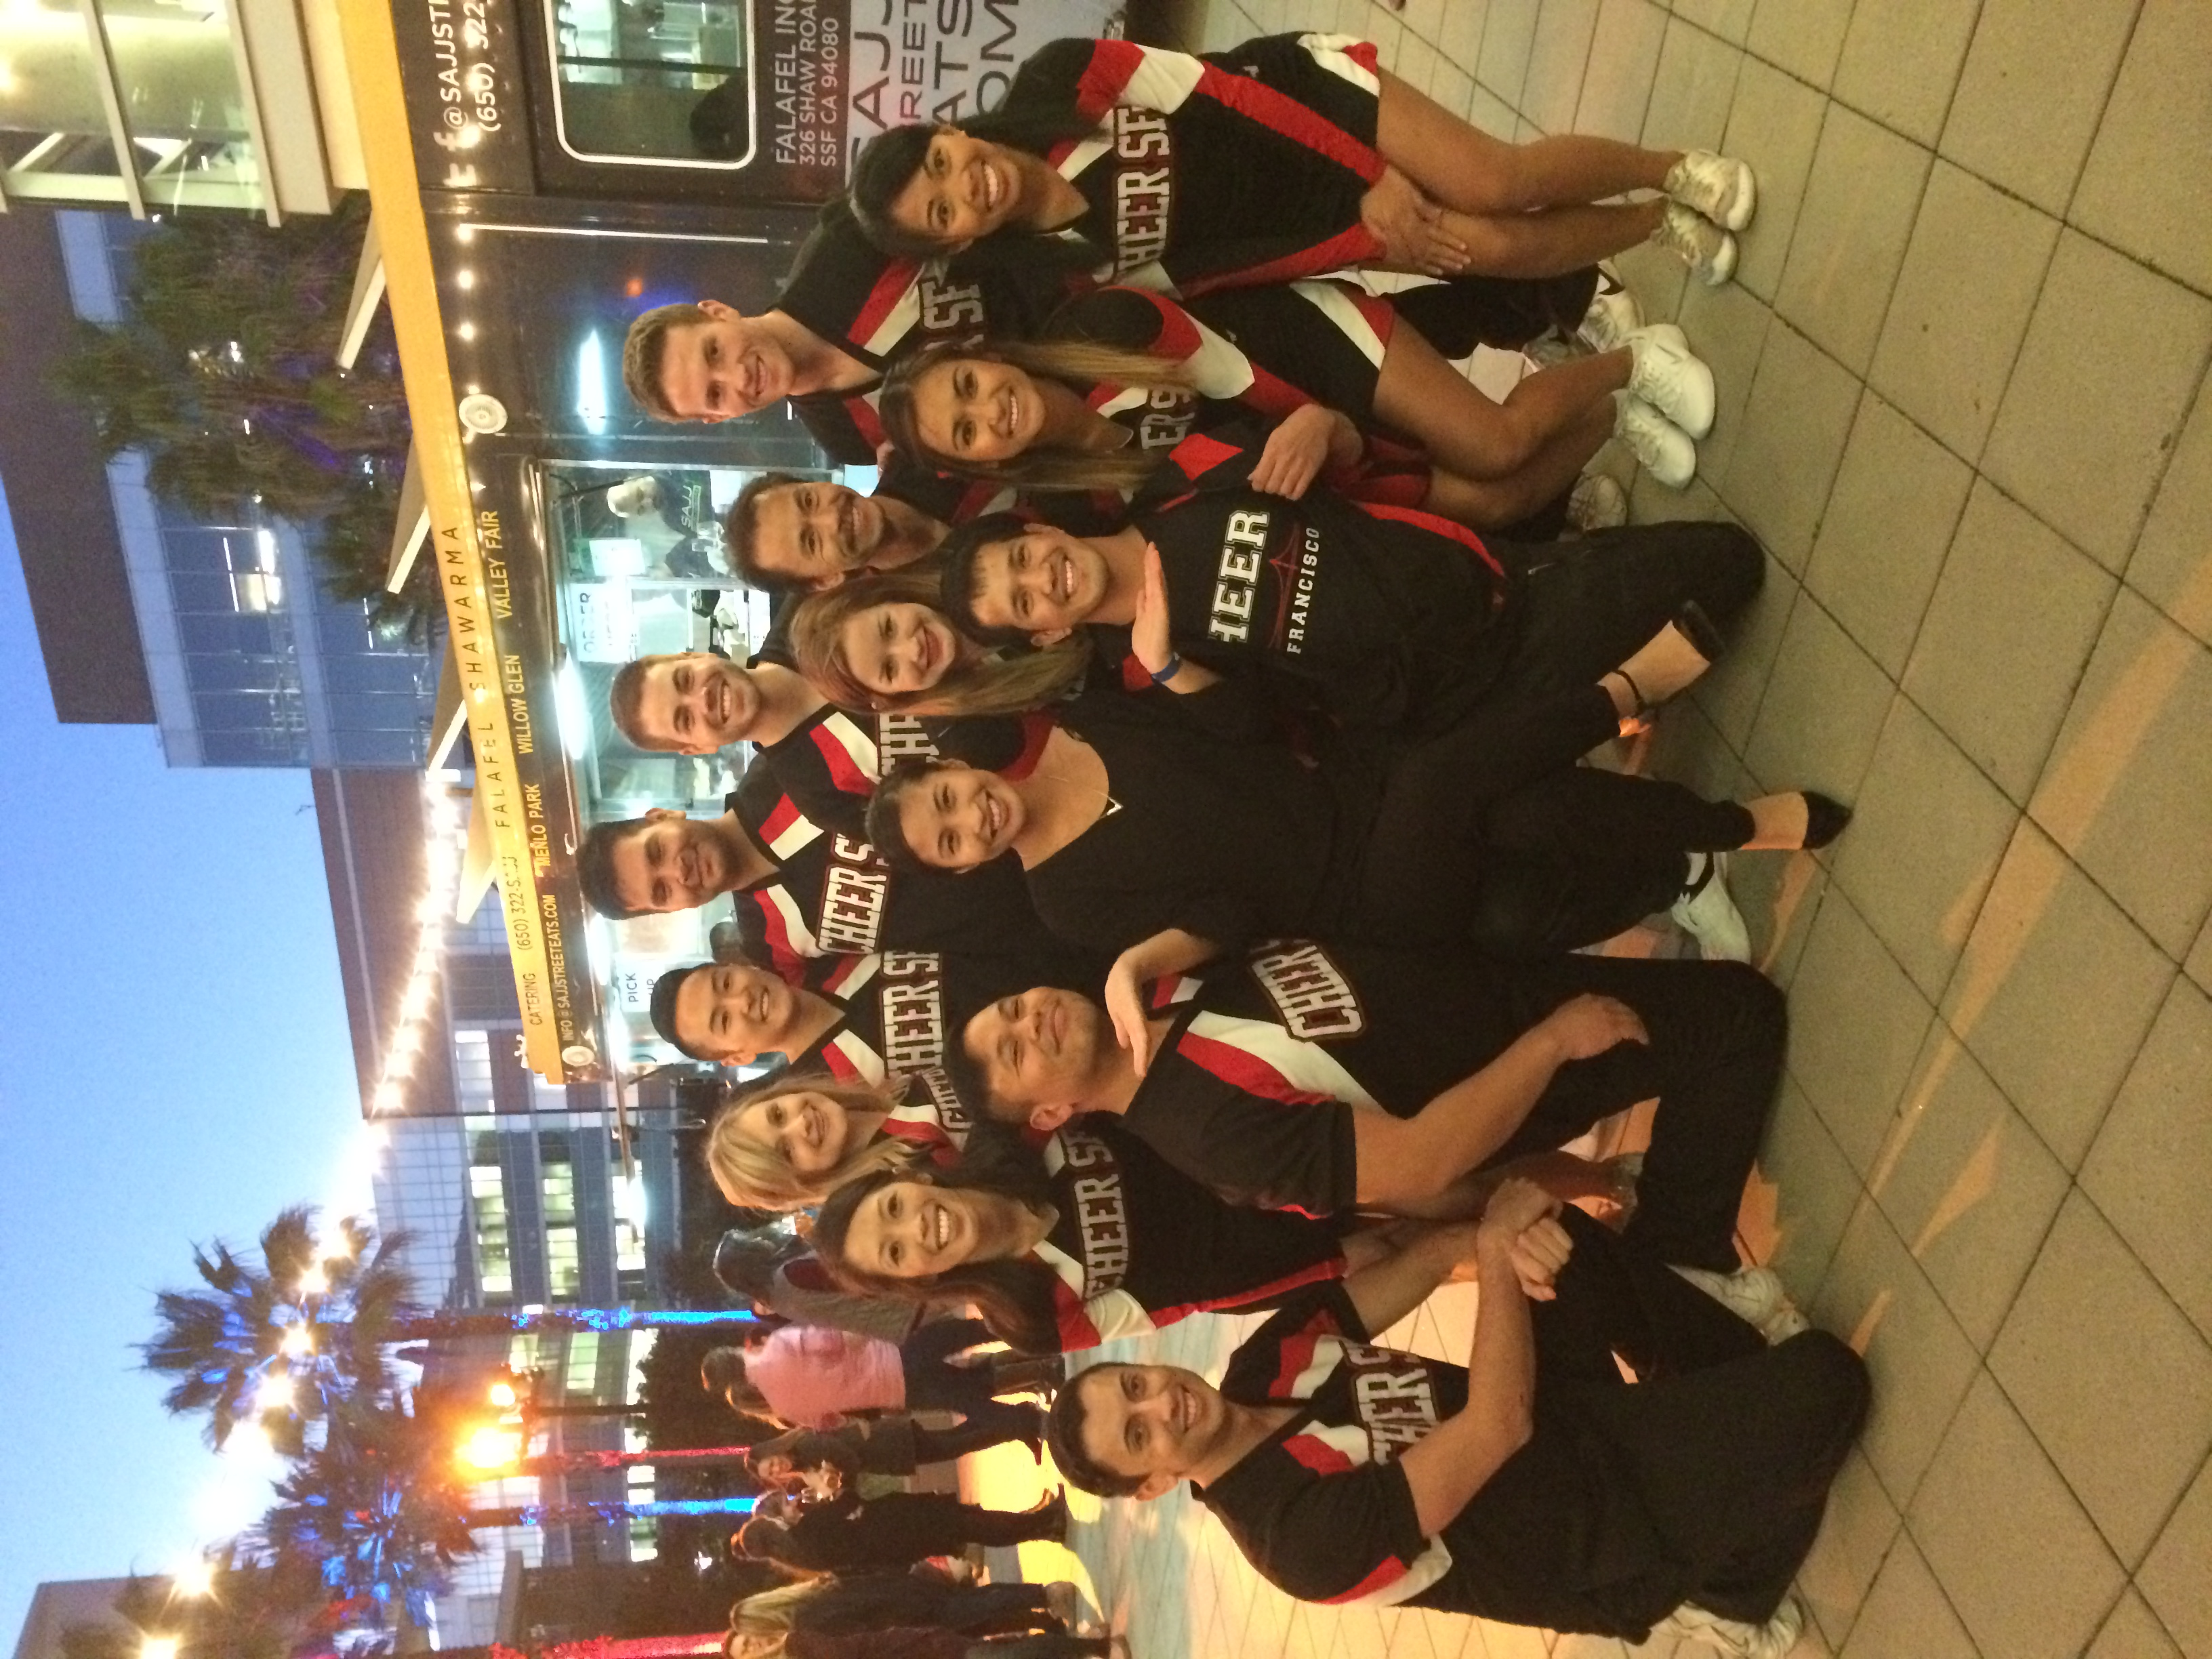 hanging with the Cheer SF squad